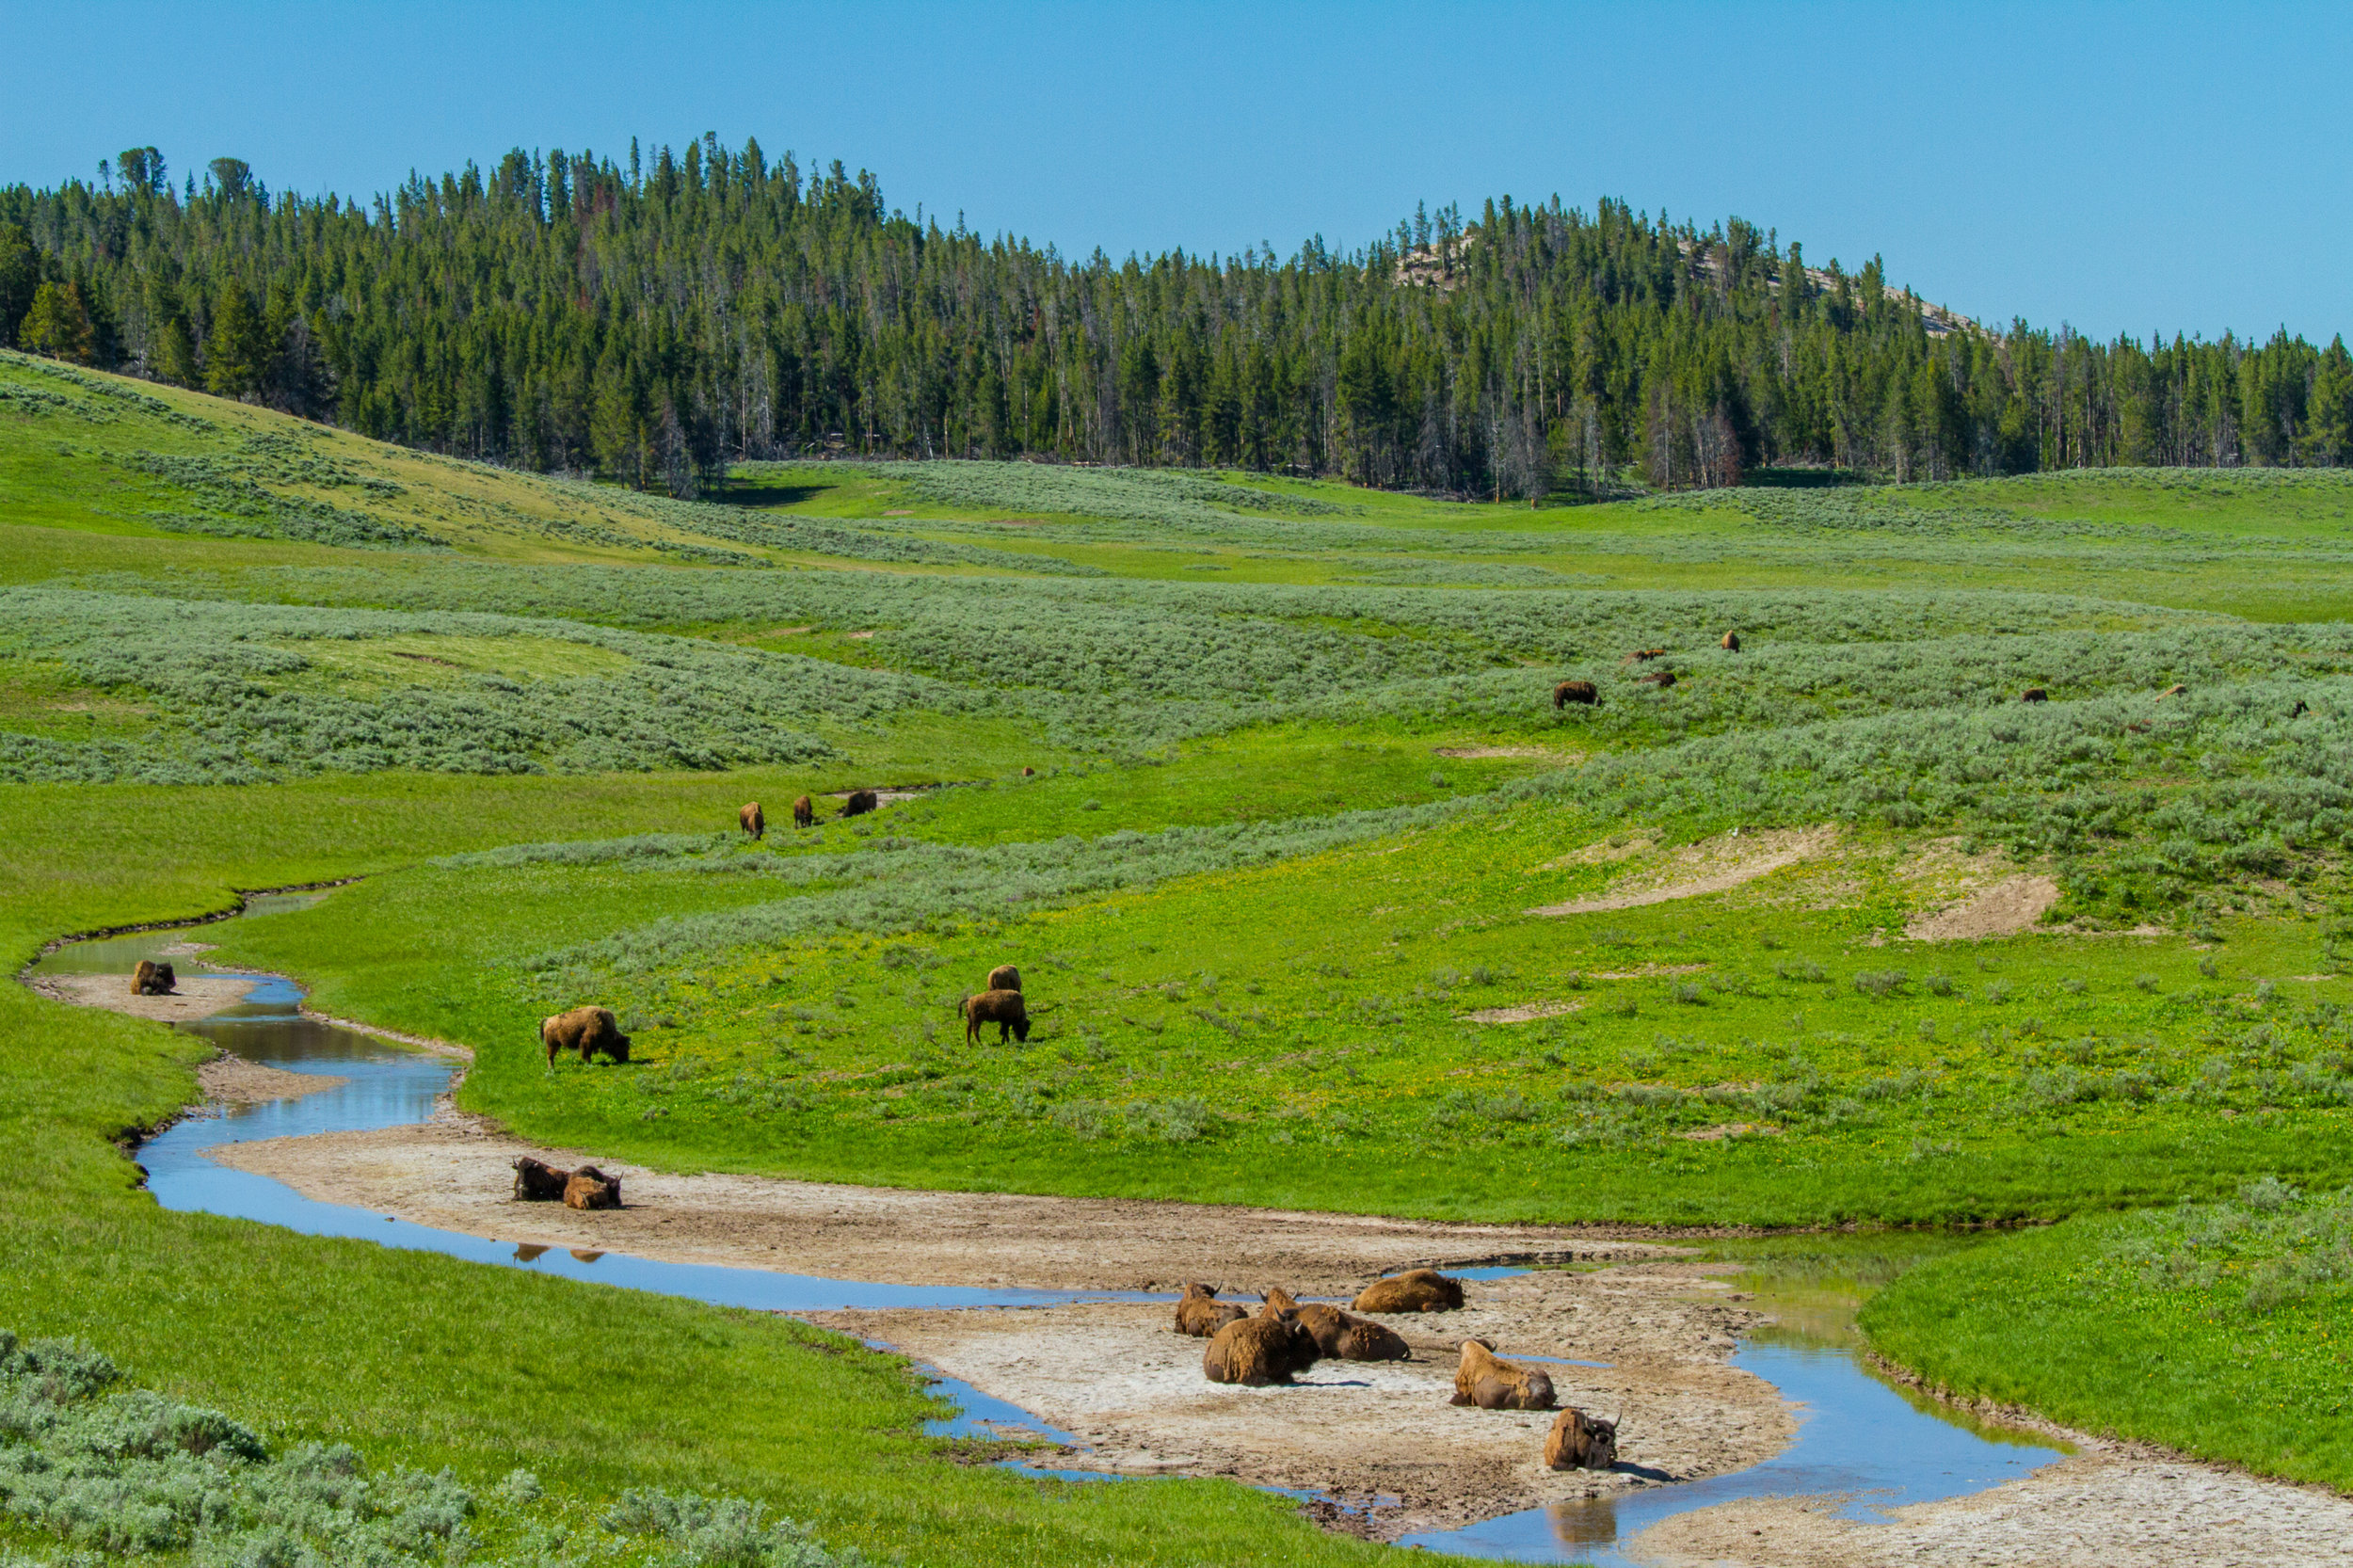 Hayden Valley, Yellowstone National Park, Image # 5202